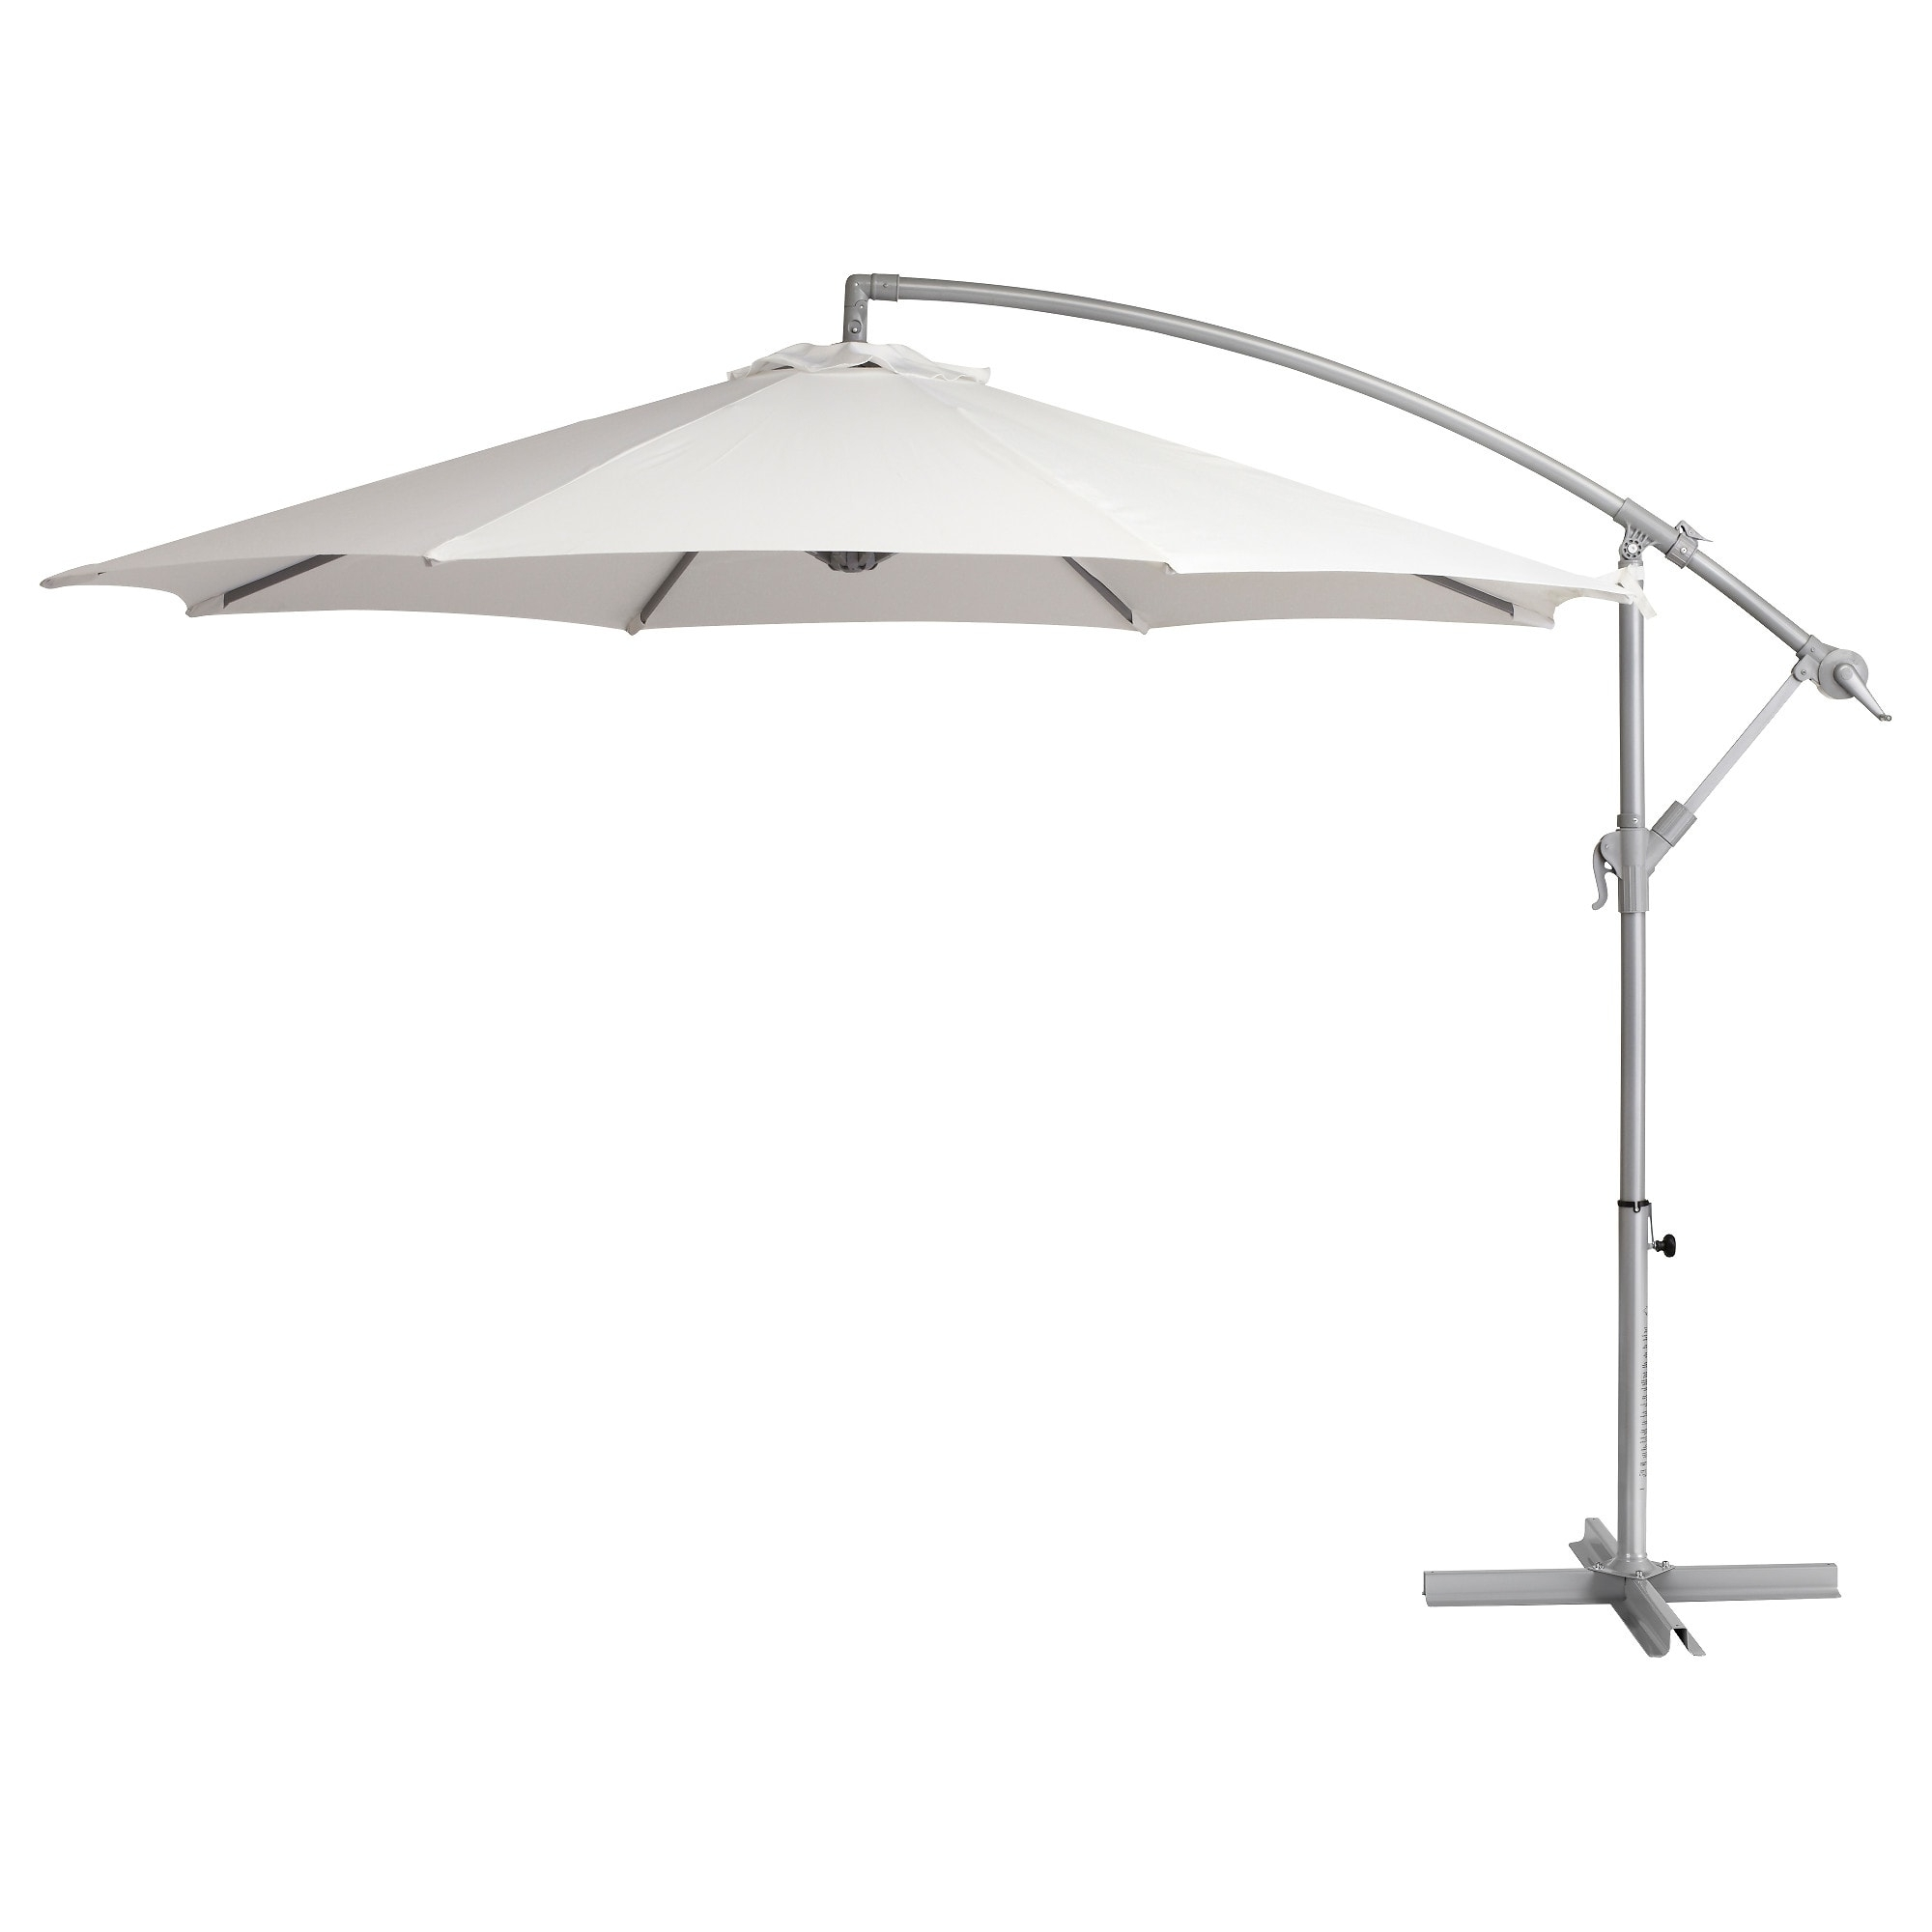 Baggön Offset Patio Umbrella – Ikea With Regard To Widely Used Patio Umbrellas With White Pole (View 10 of 20)